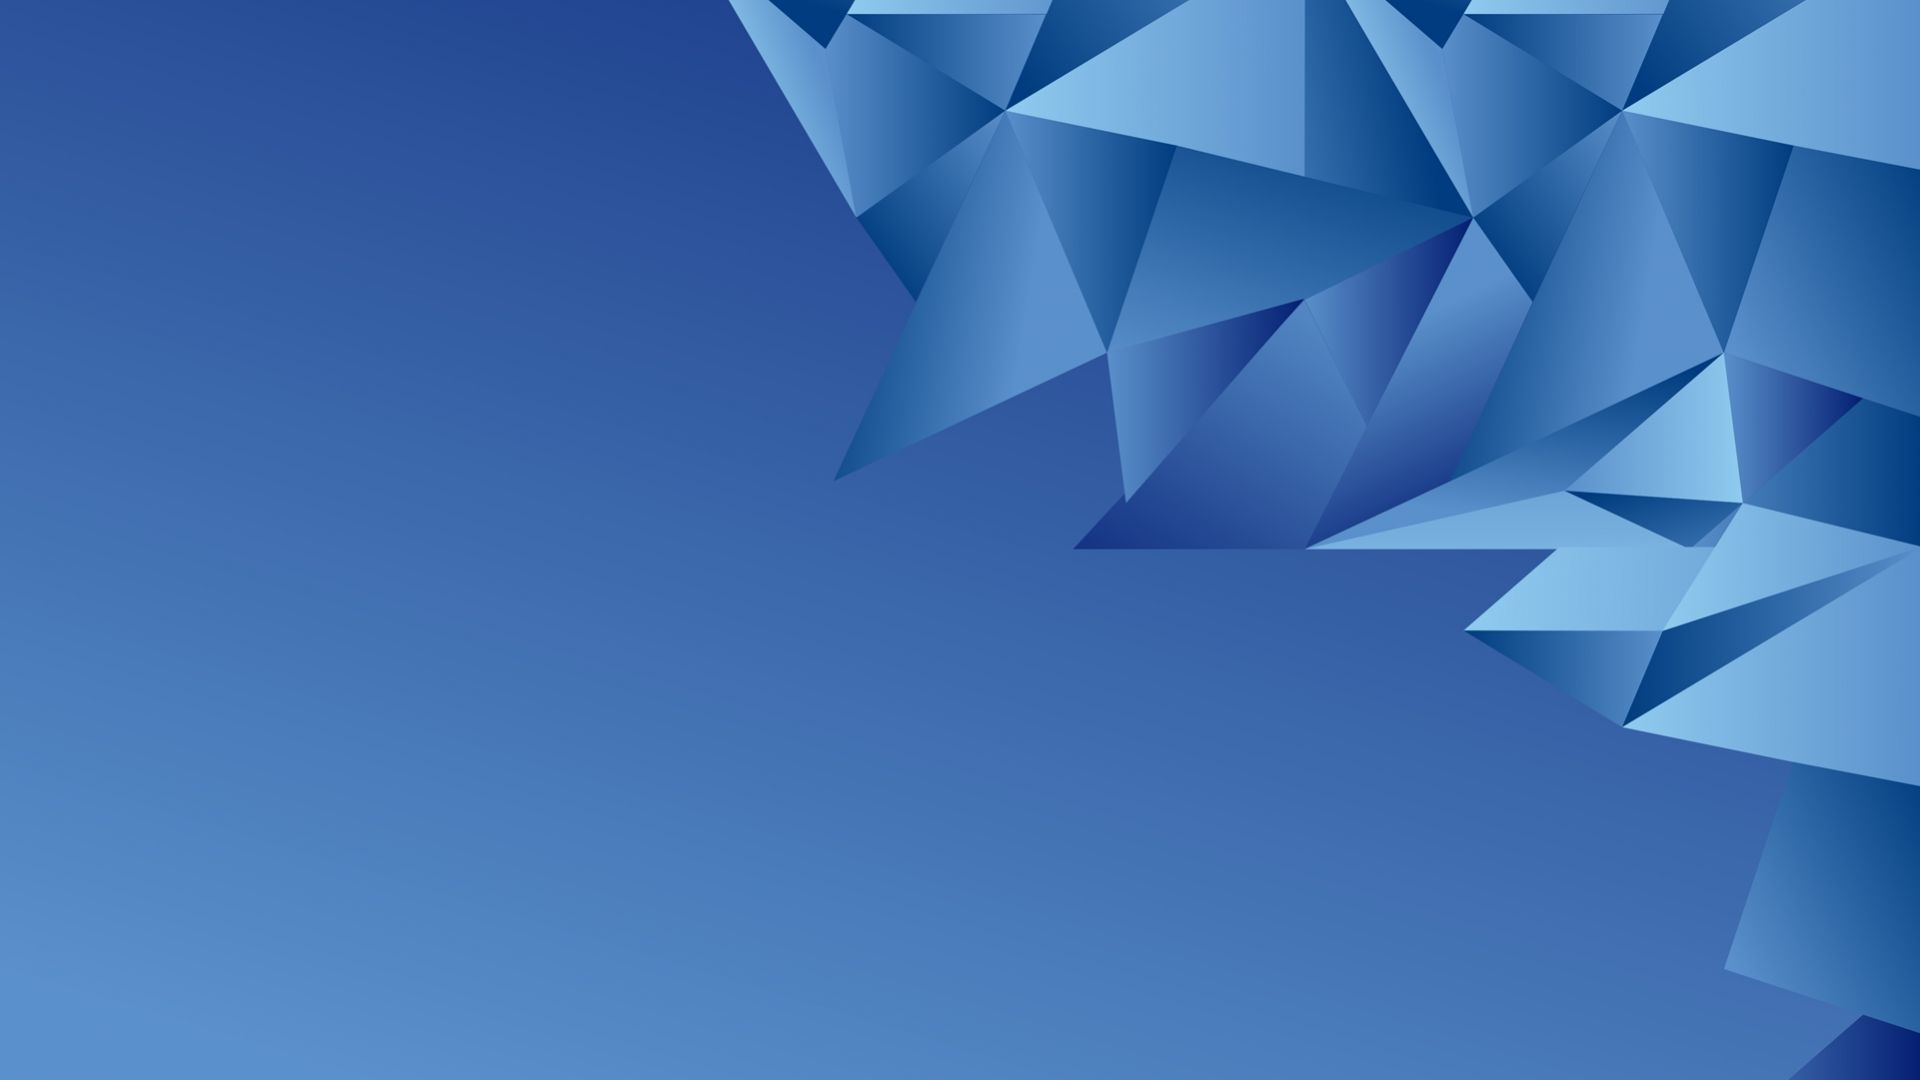 Wallpaper Blue abstract, triangles